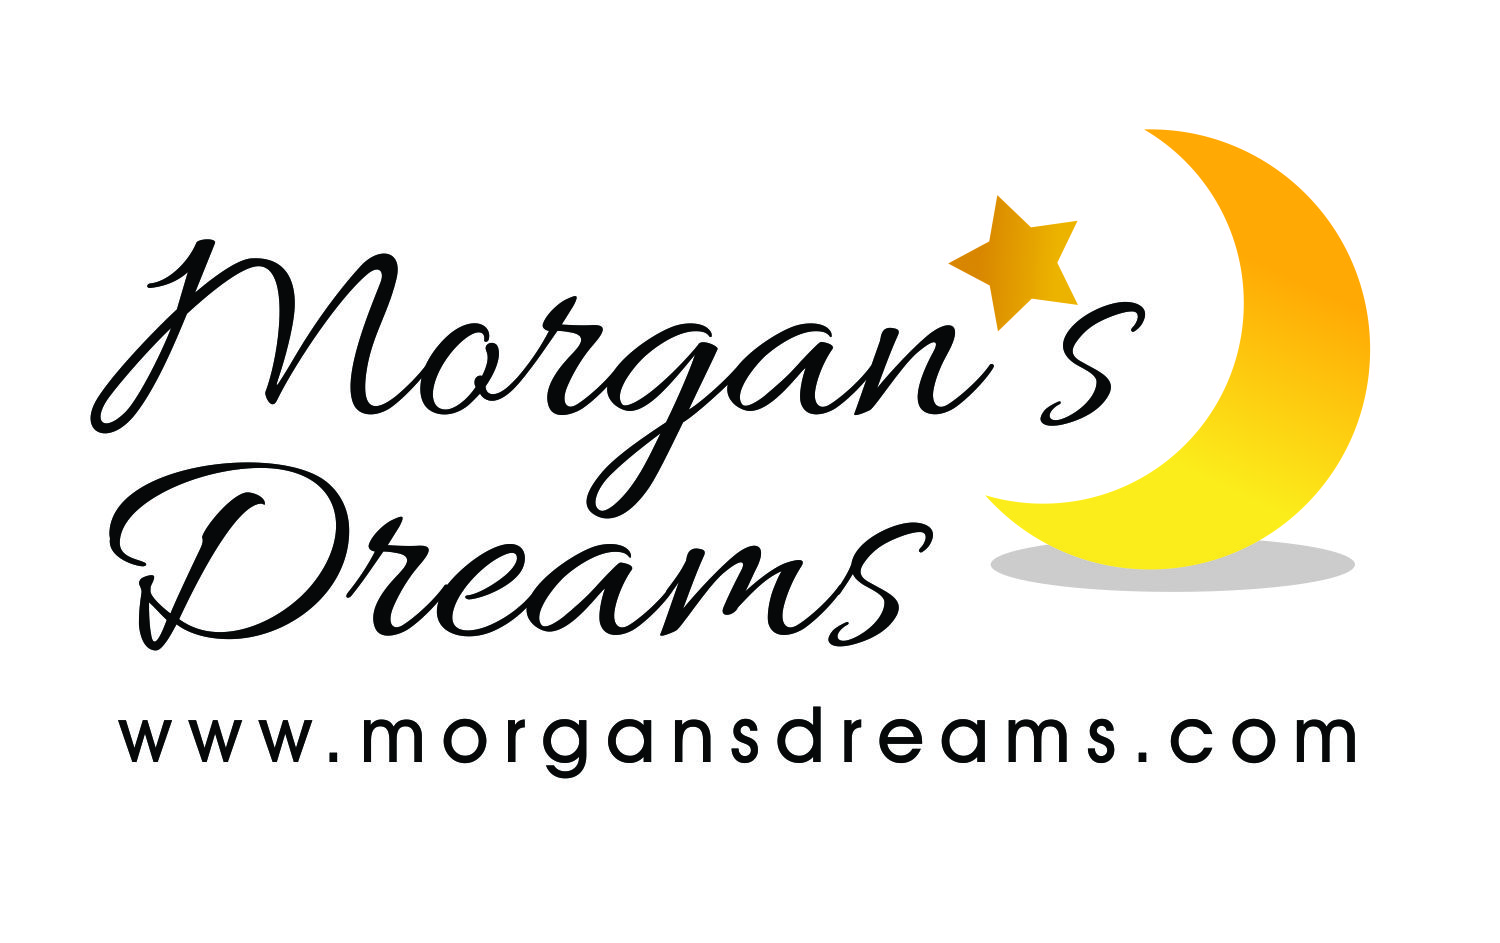 Morgan's Dreams